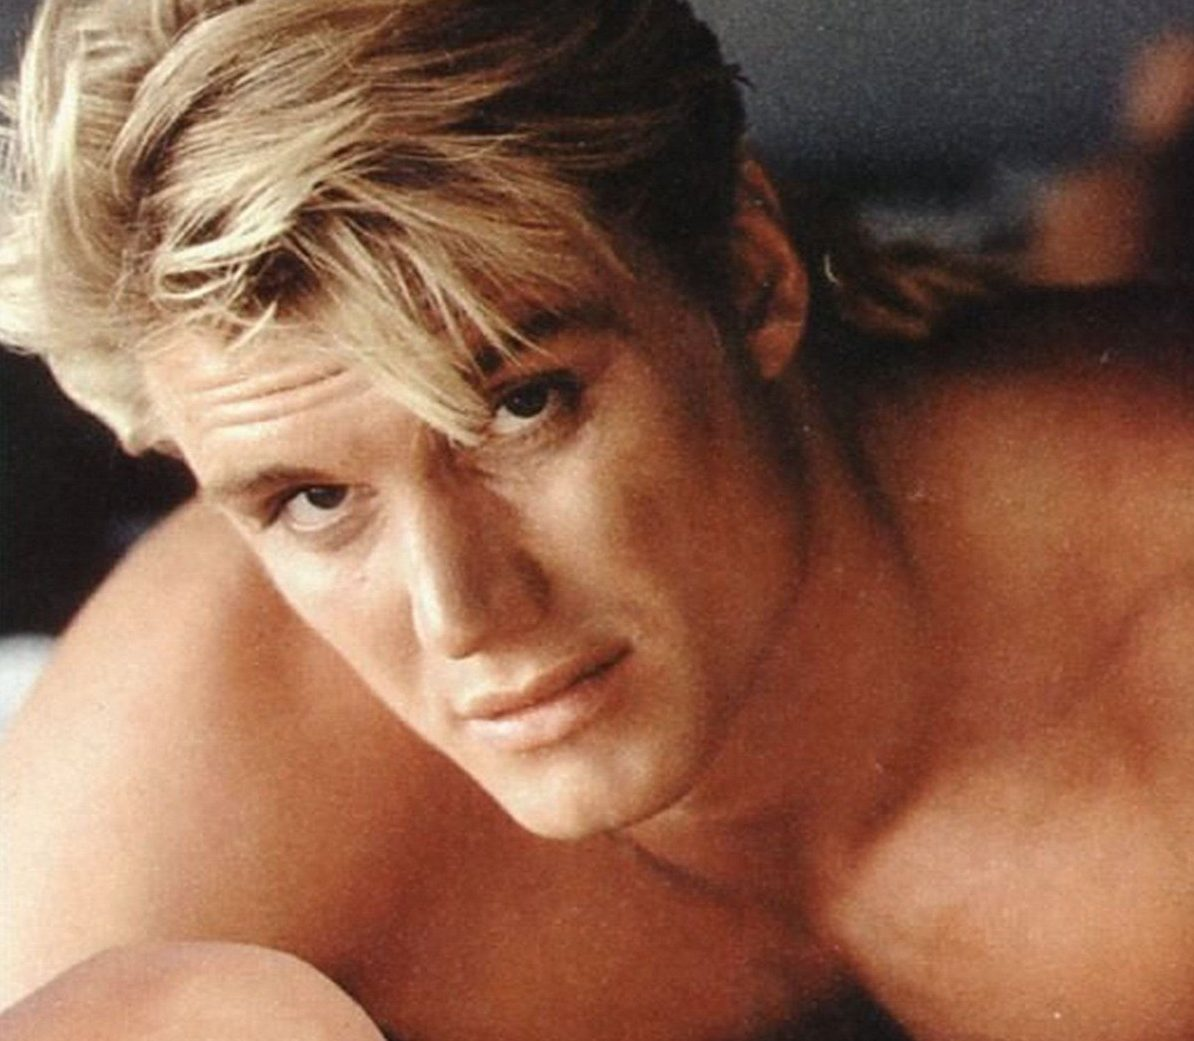 127077 dolph lundgren photo pics wallpapers photo 2000x1668 h e1605782742735 25 Things You Probably Didn't Know About Action Movie Legend Dolph Lundgren